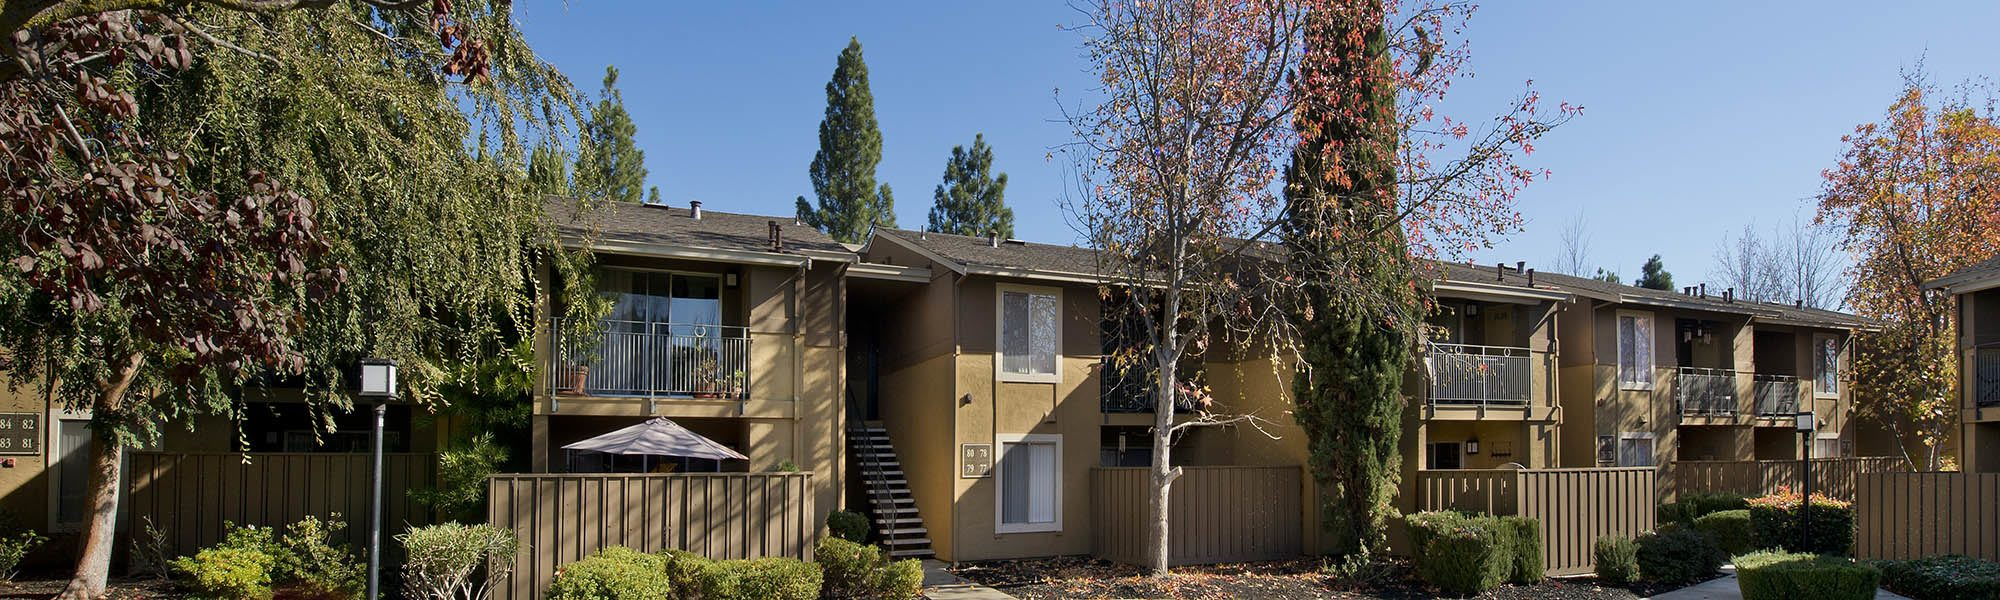 Read reviews of Valley Ridge Apartment Homes on our website